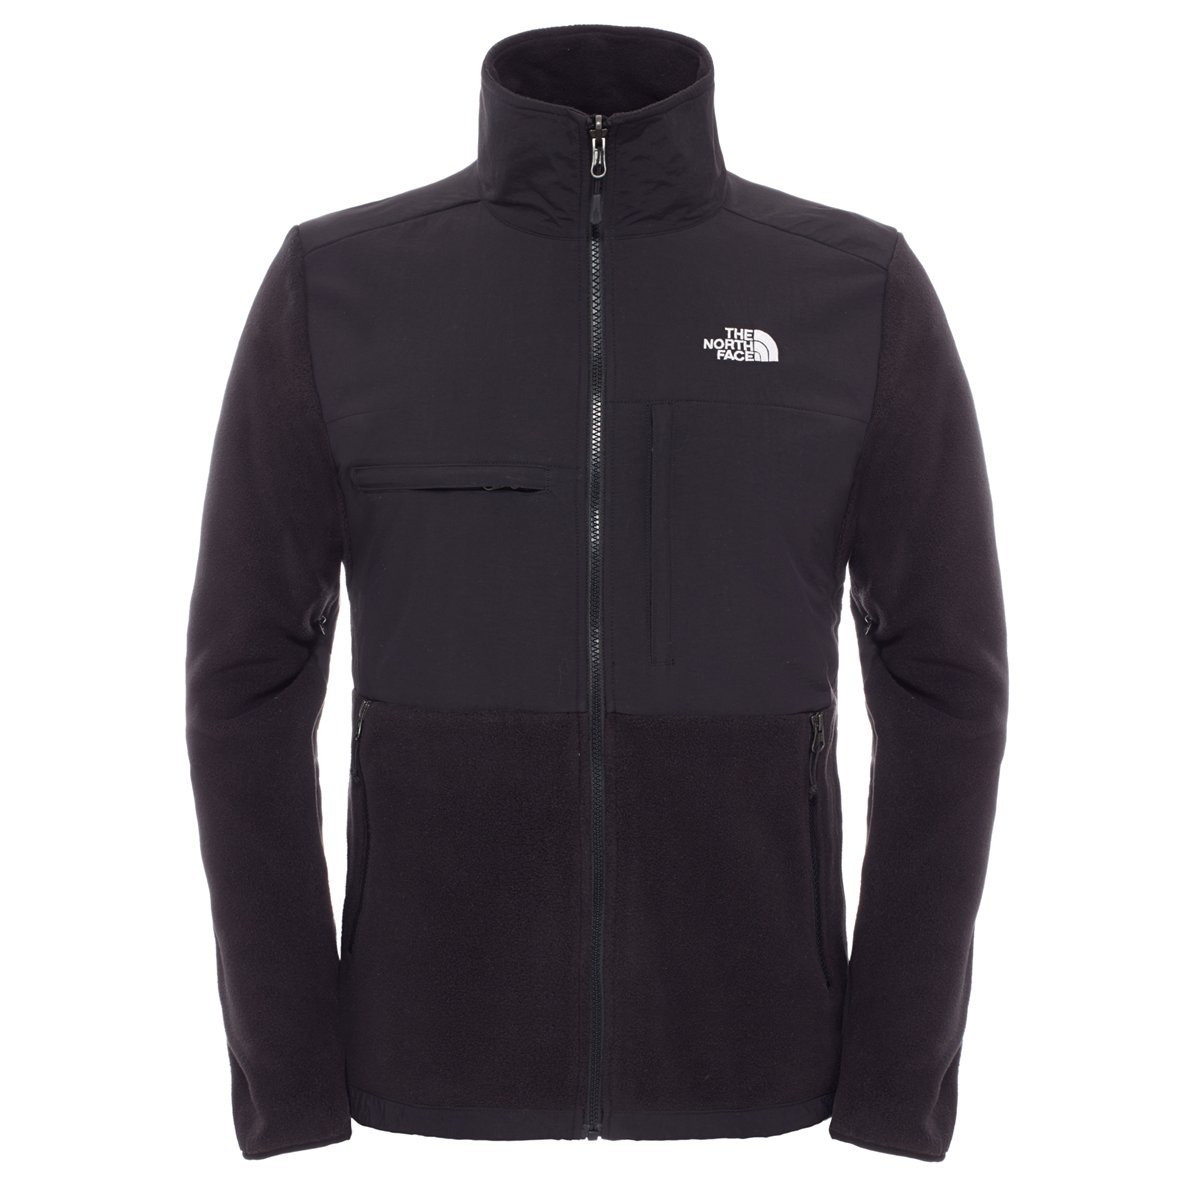 THE NORTH FACE Herren Jacke Denali II online bestellen